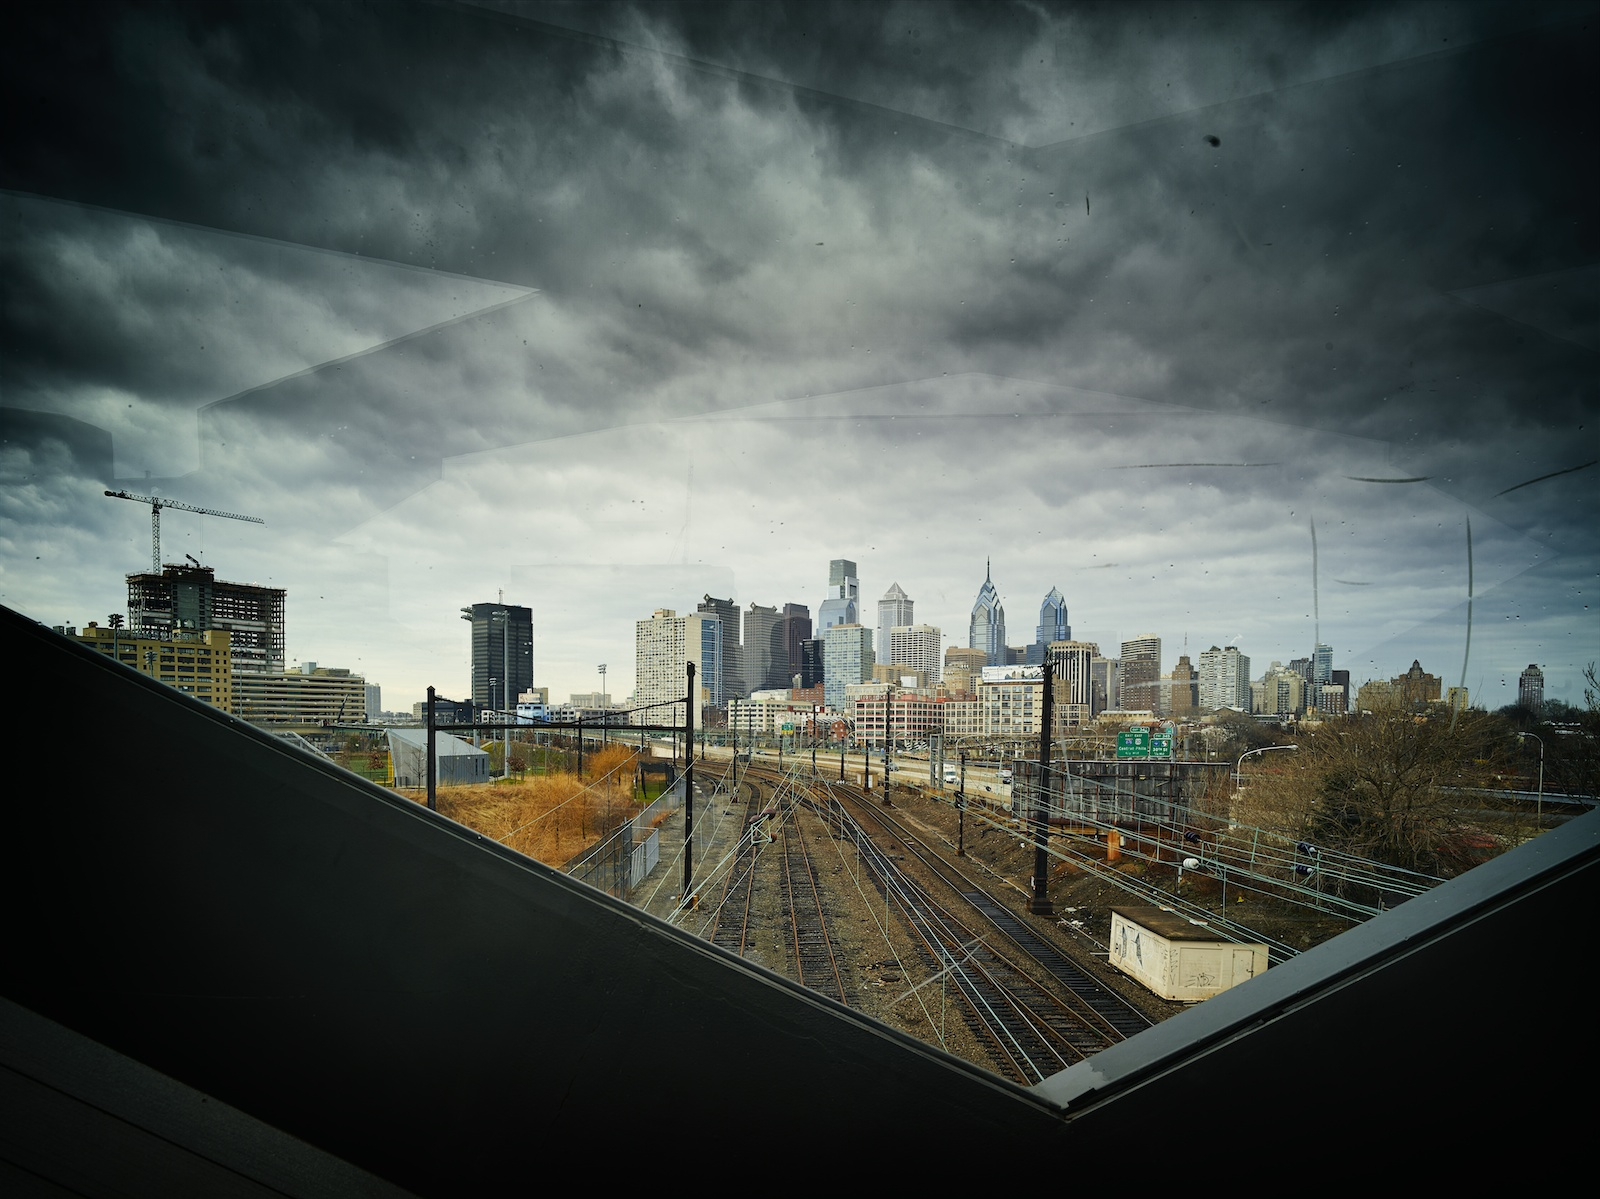 From bridge, the view back towards Philadelphia, structure reflected in sky.